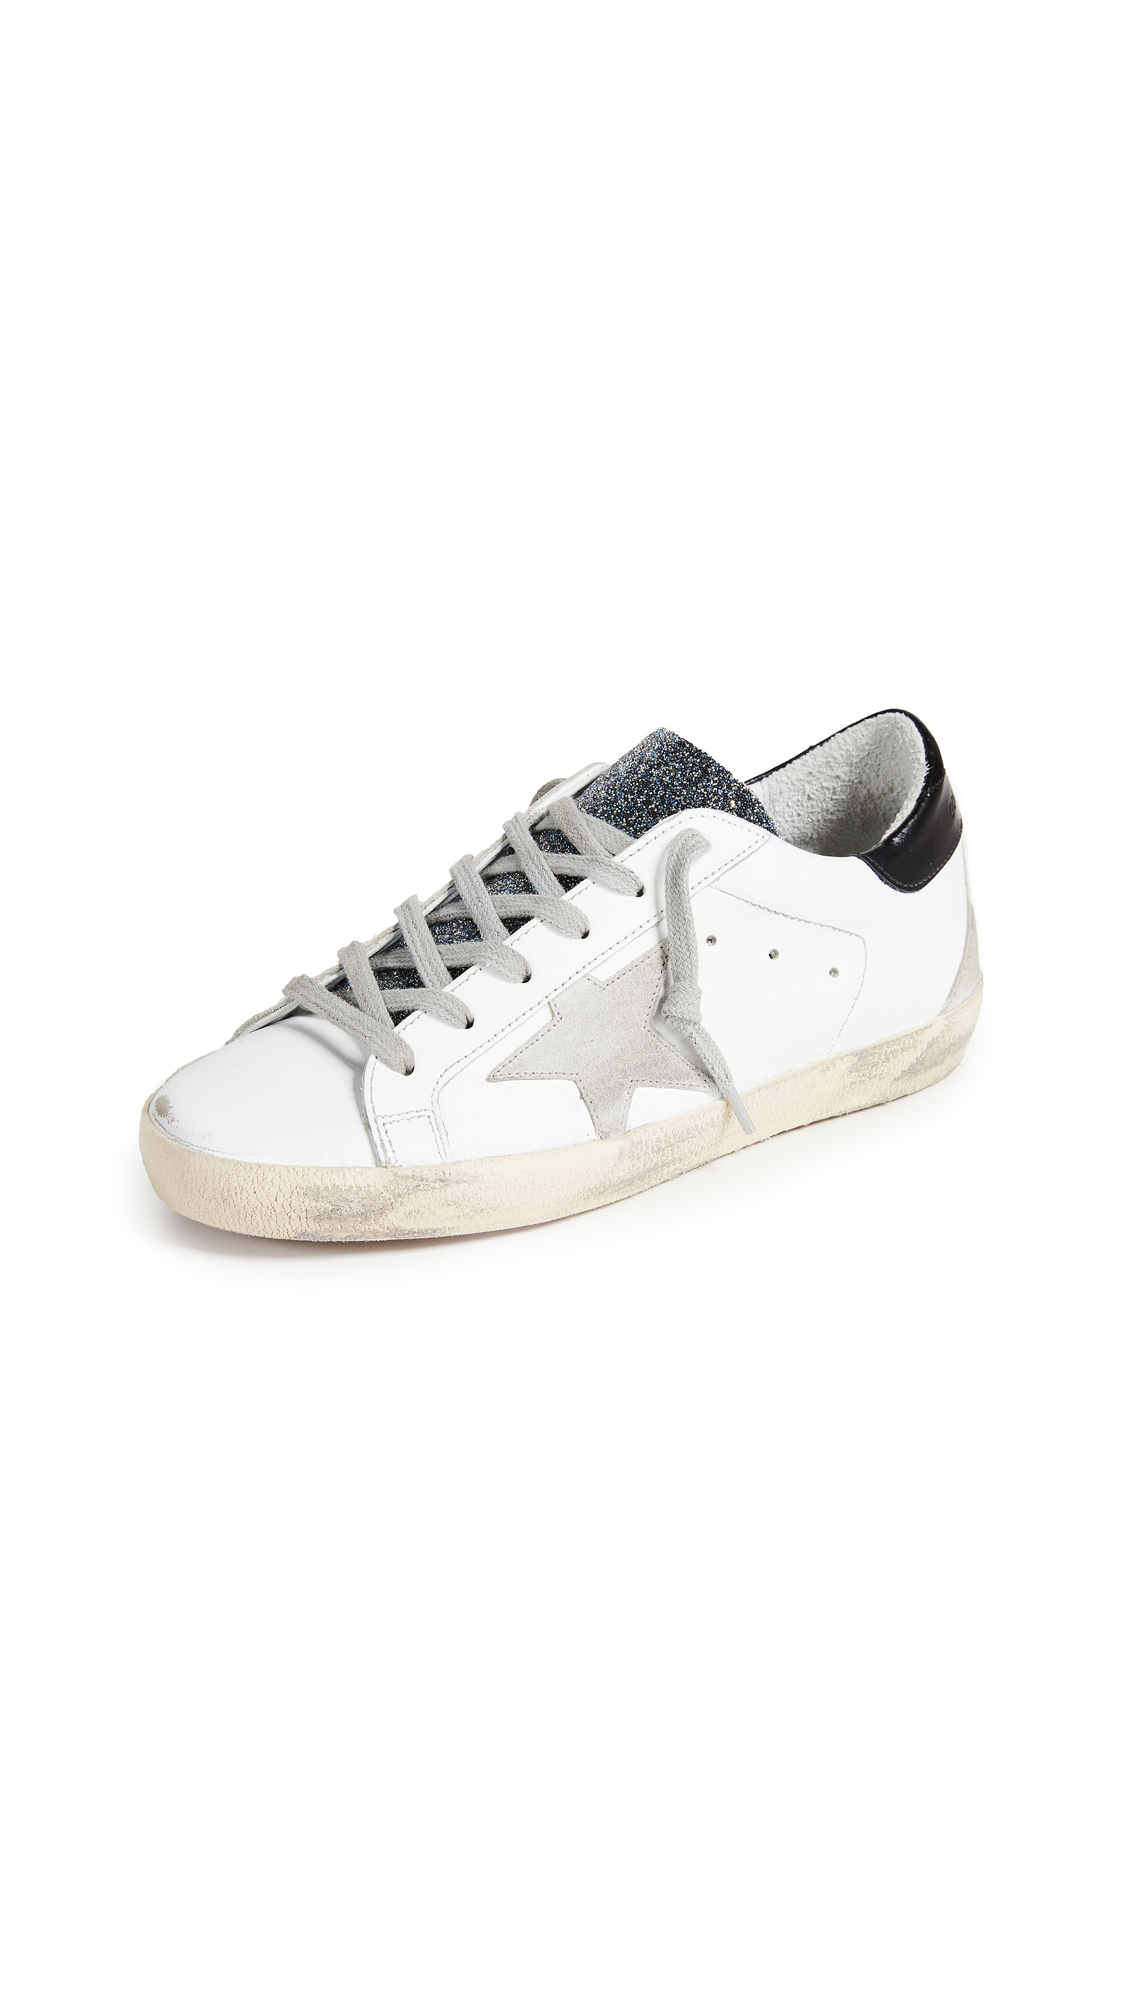 Golden Goose Superstar Sneakers - White/Cosmic Crystal